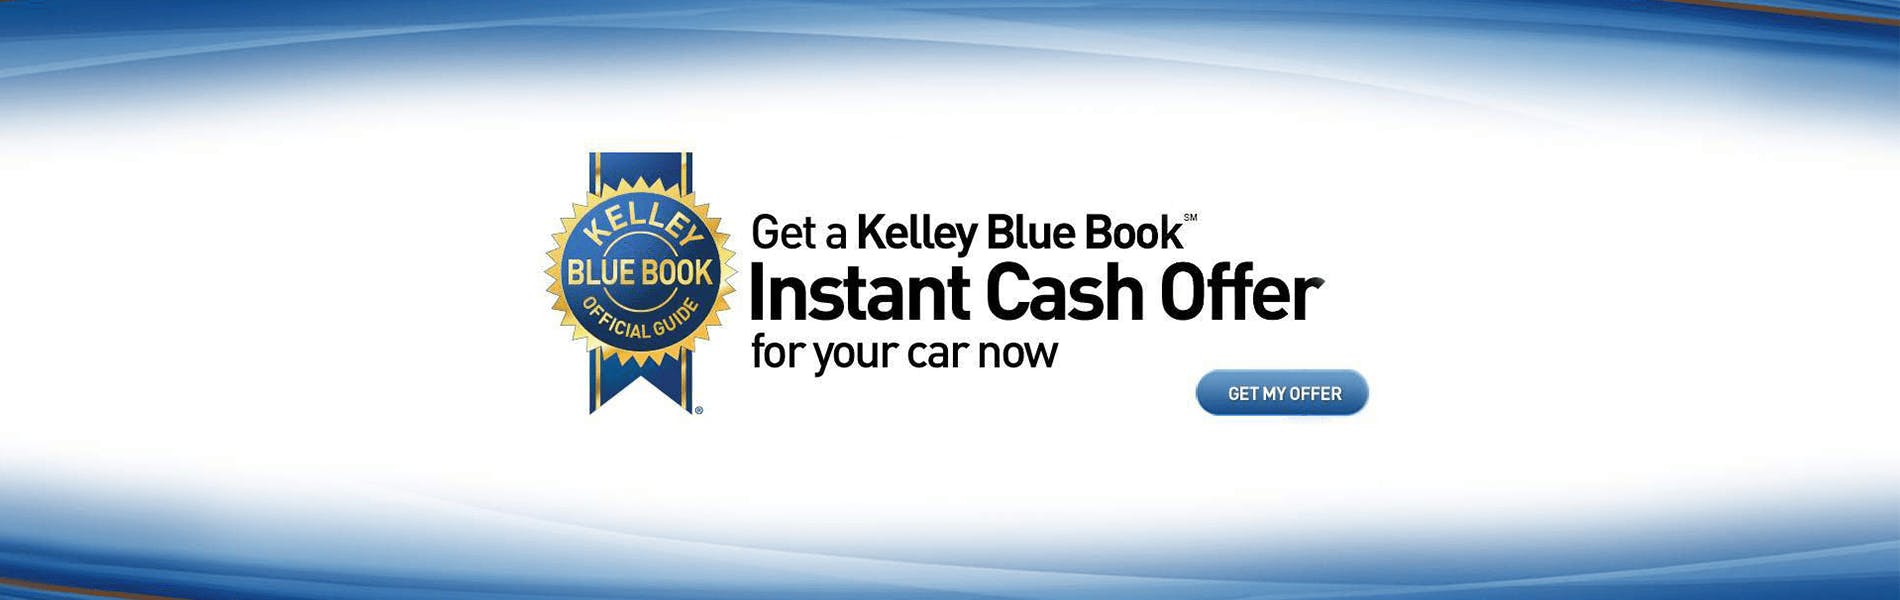 kelley blue book - instant cash offer special